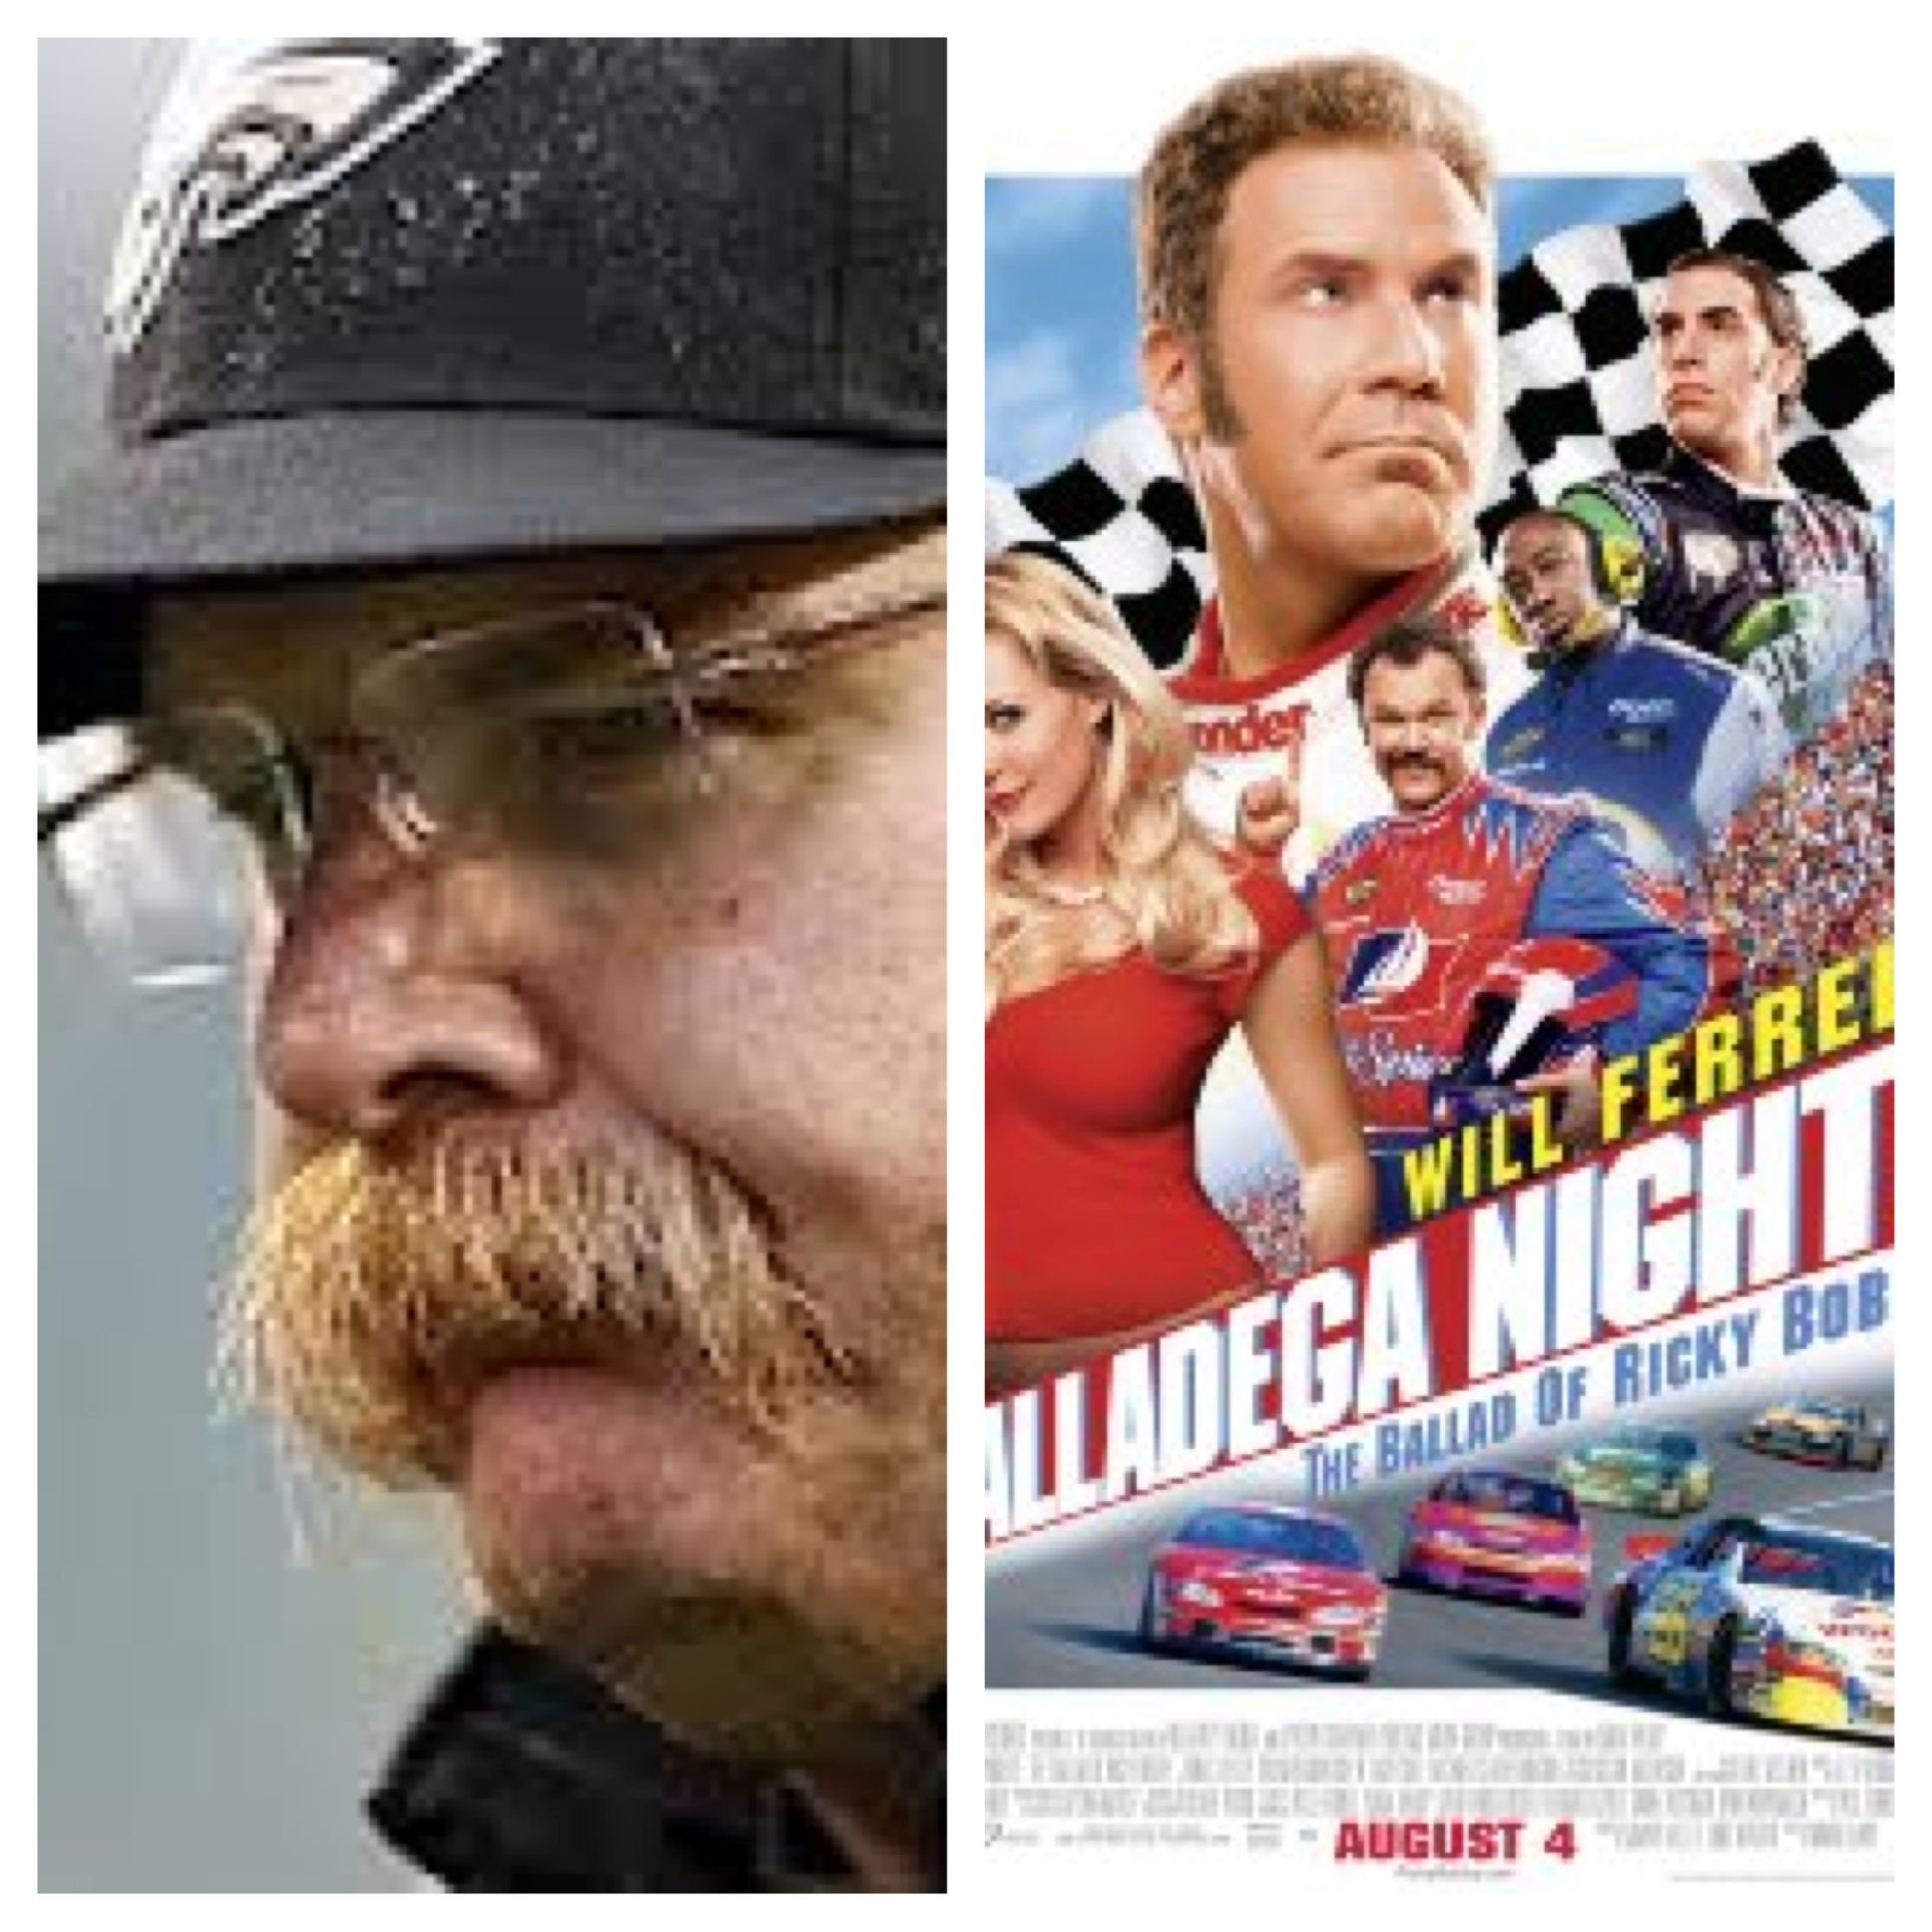 Time's yours or Talladega nights